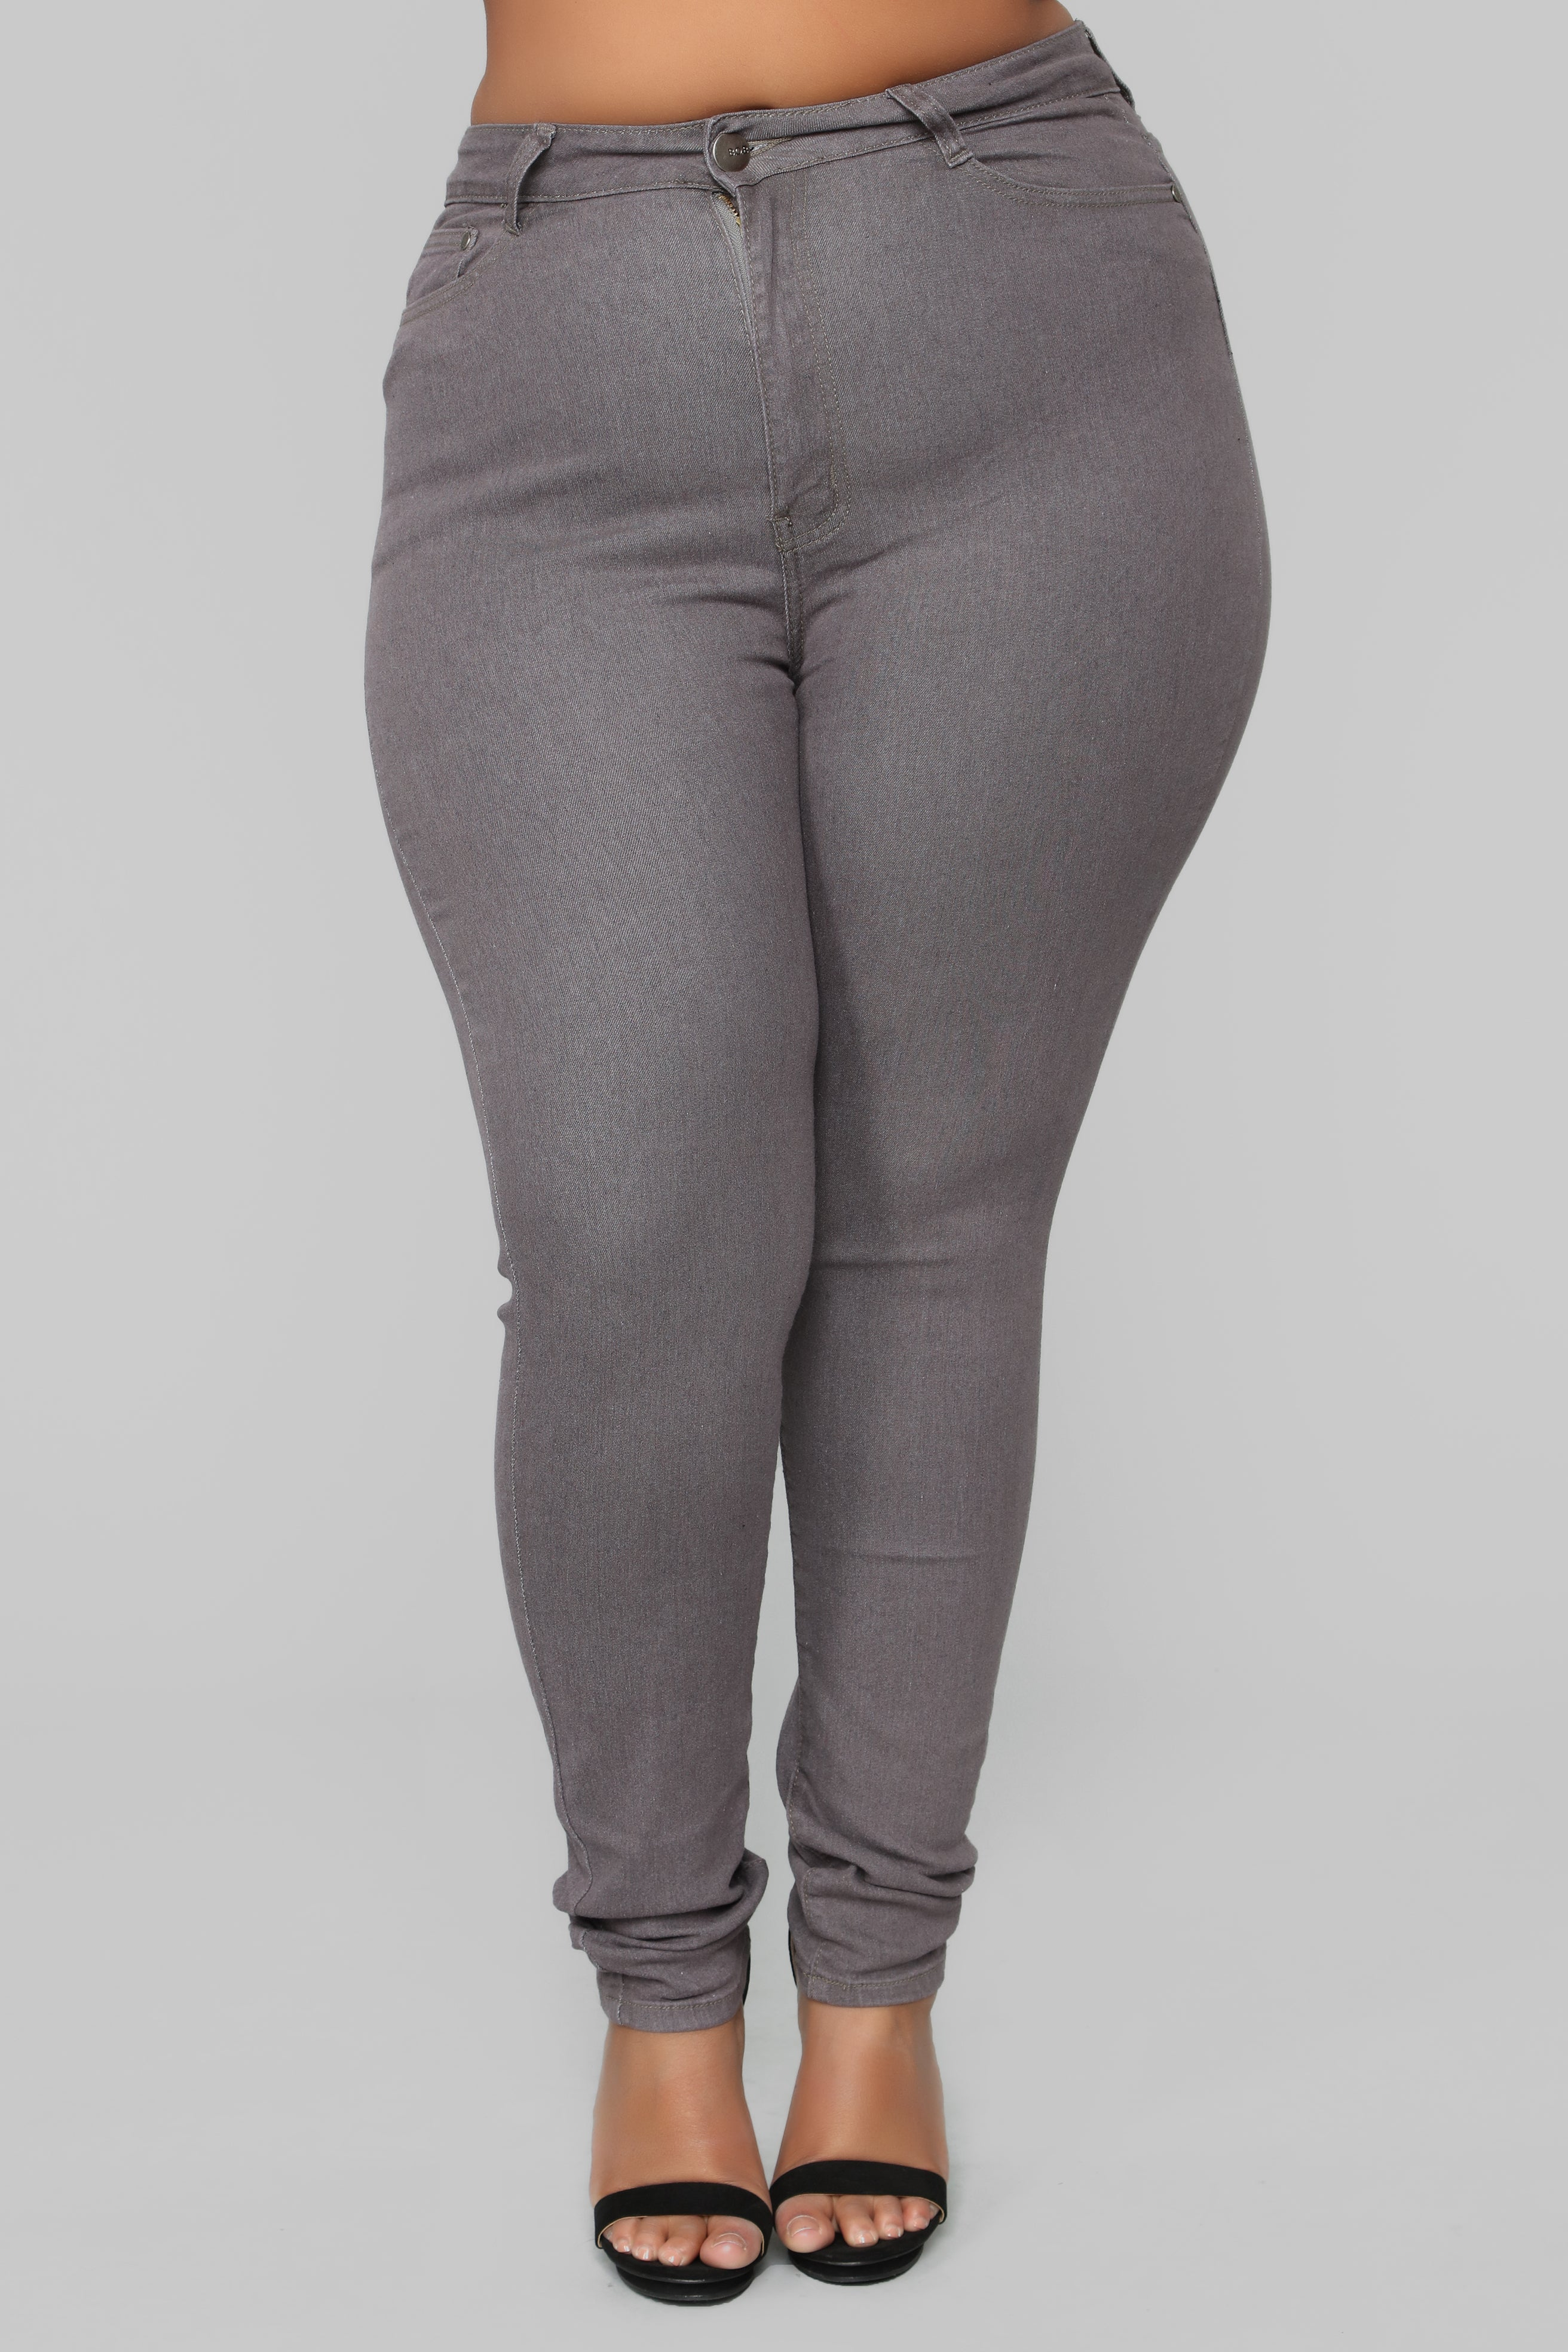 7571cd3fba9 The Right Angle Skinny Jeans - Grey